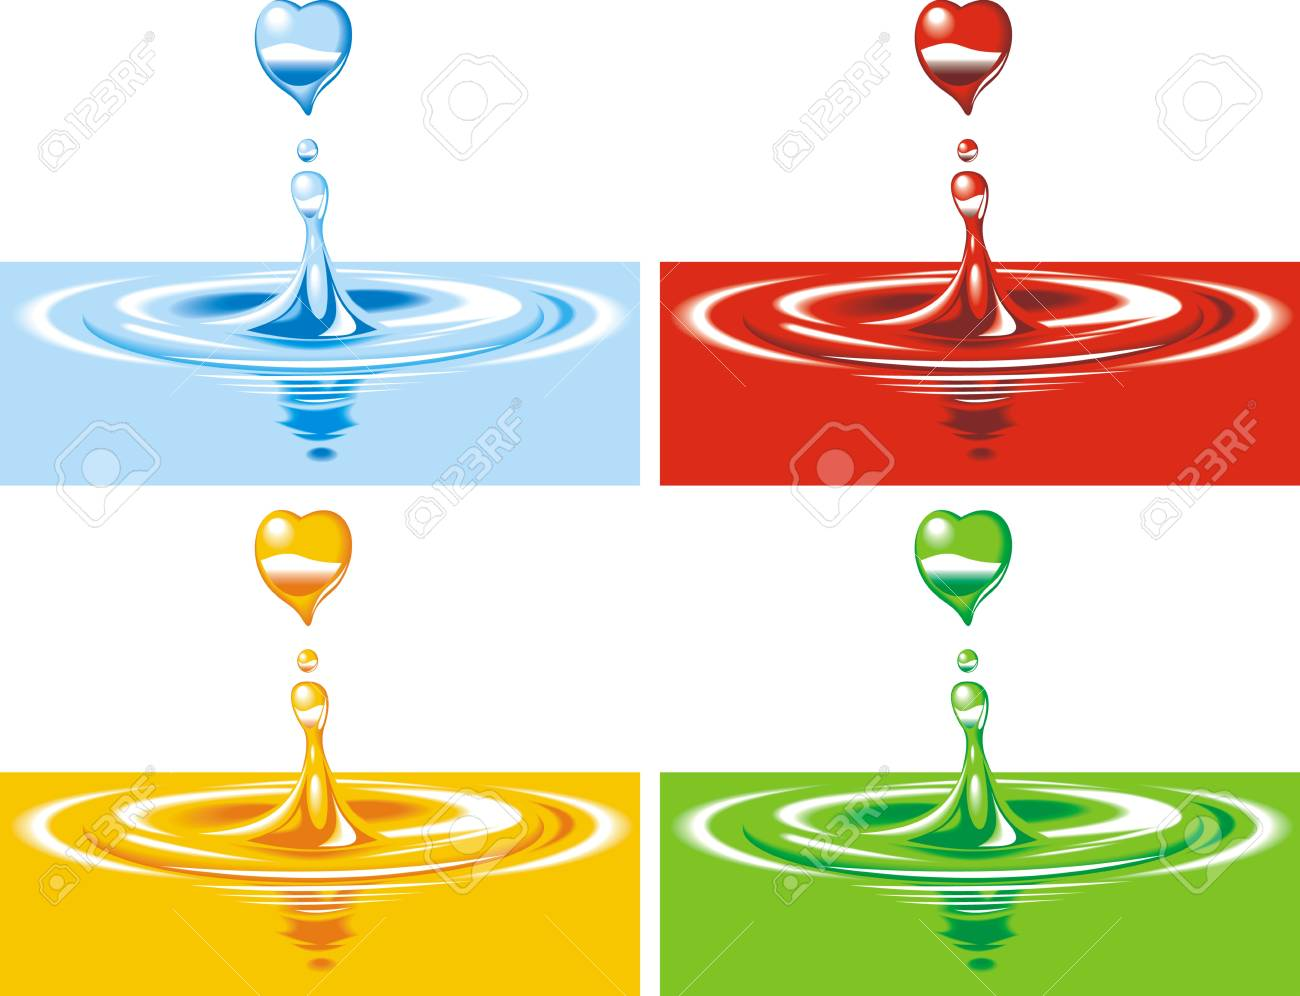 colored drops on the water surface isolated on white background Stock Vector - 18580751